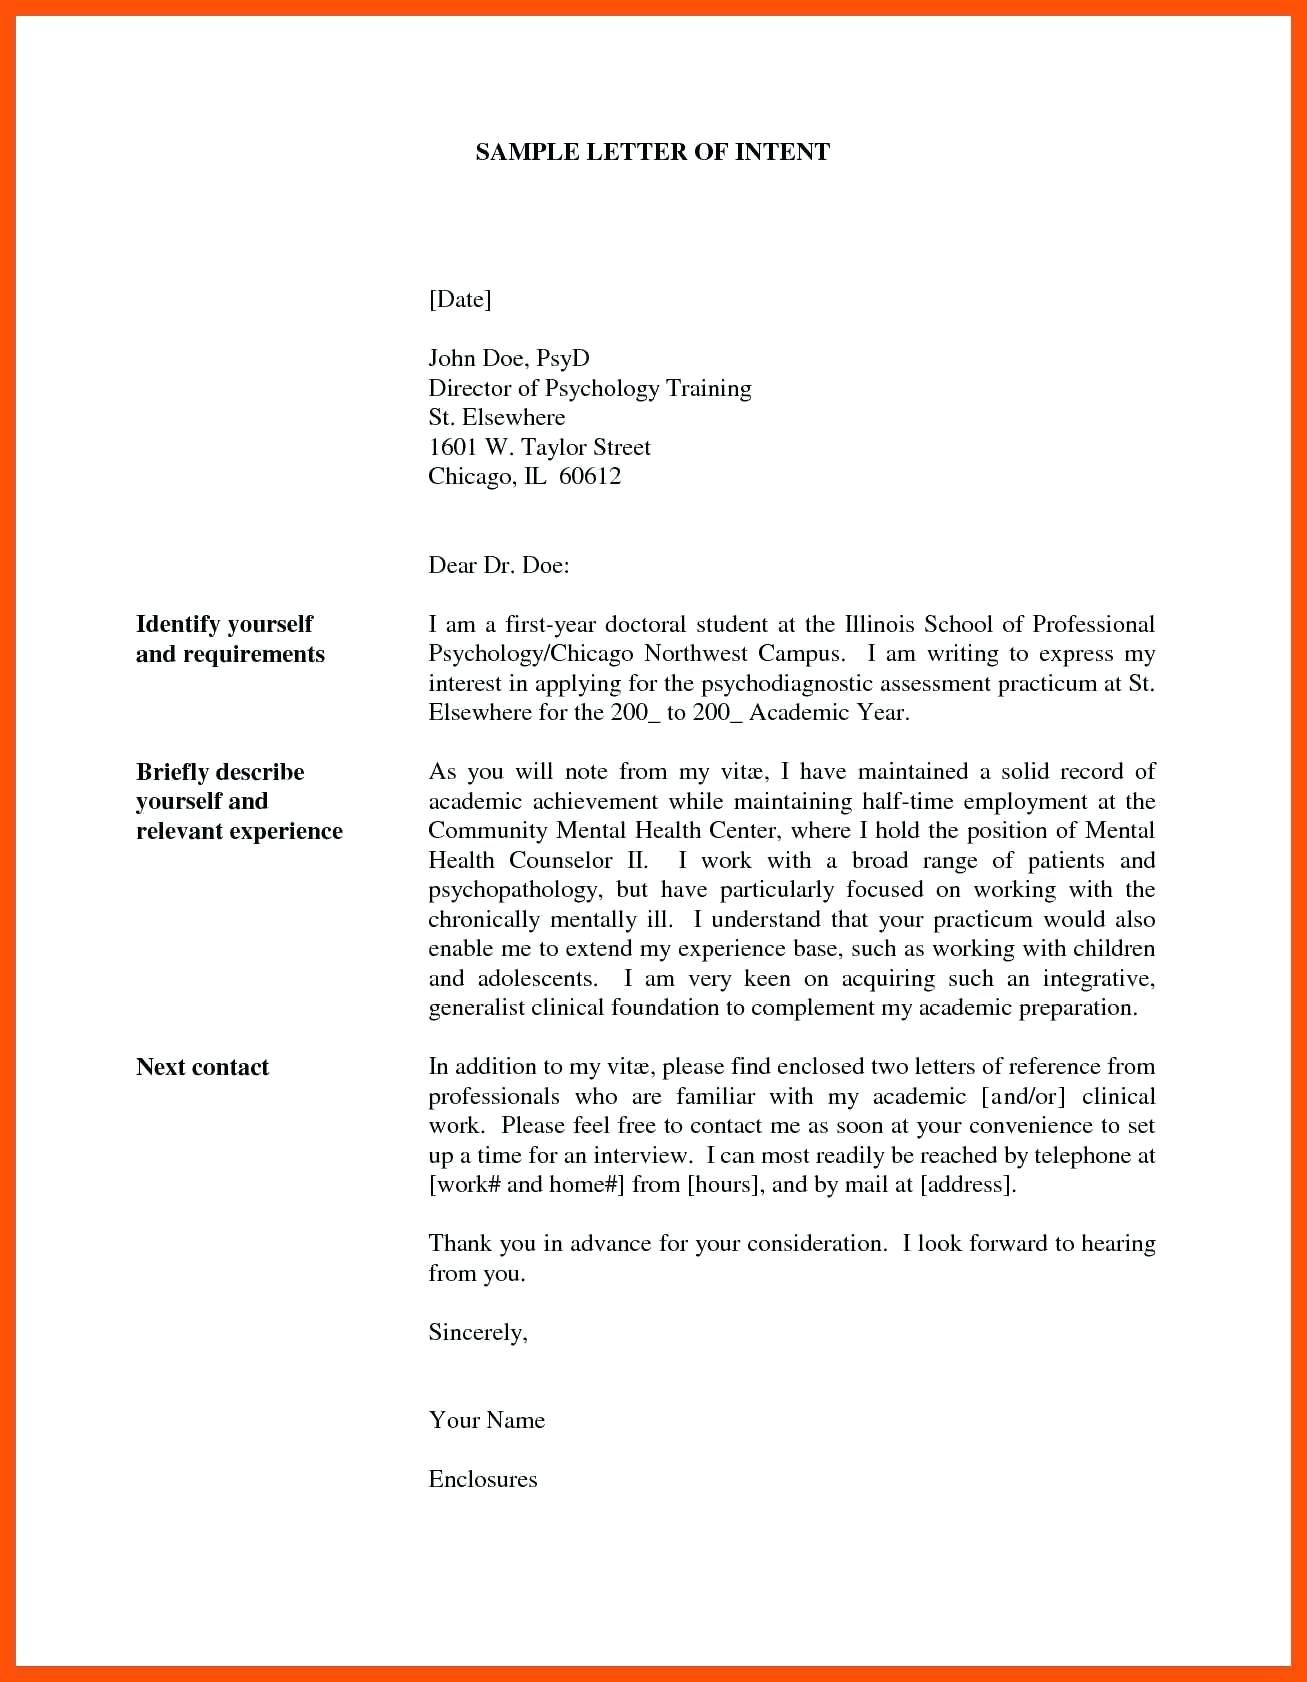 Letter Of Intent for Job Template - Sample Letter Intent for Job Template How to Write Sue Money A